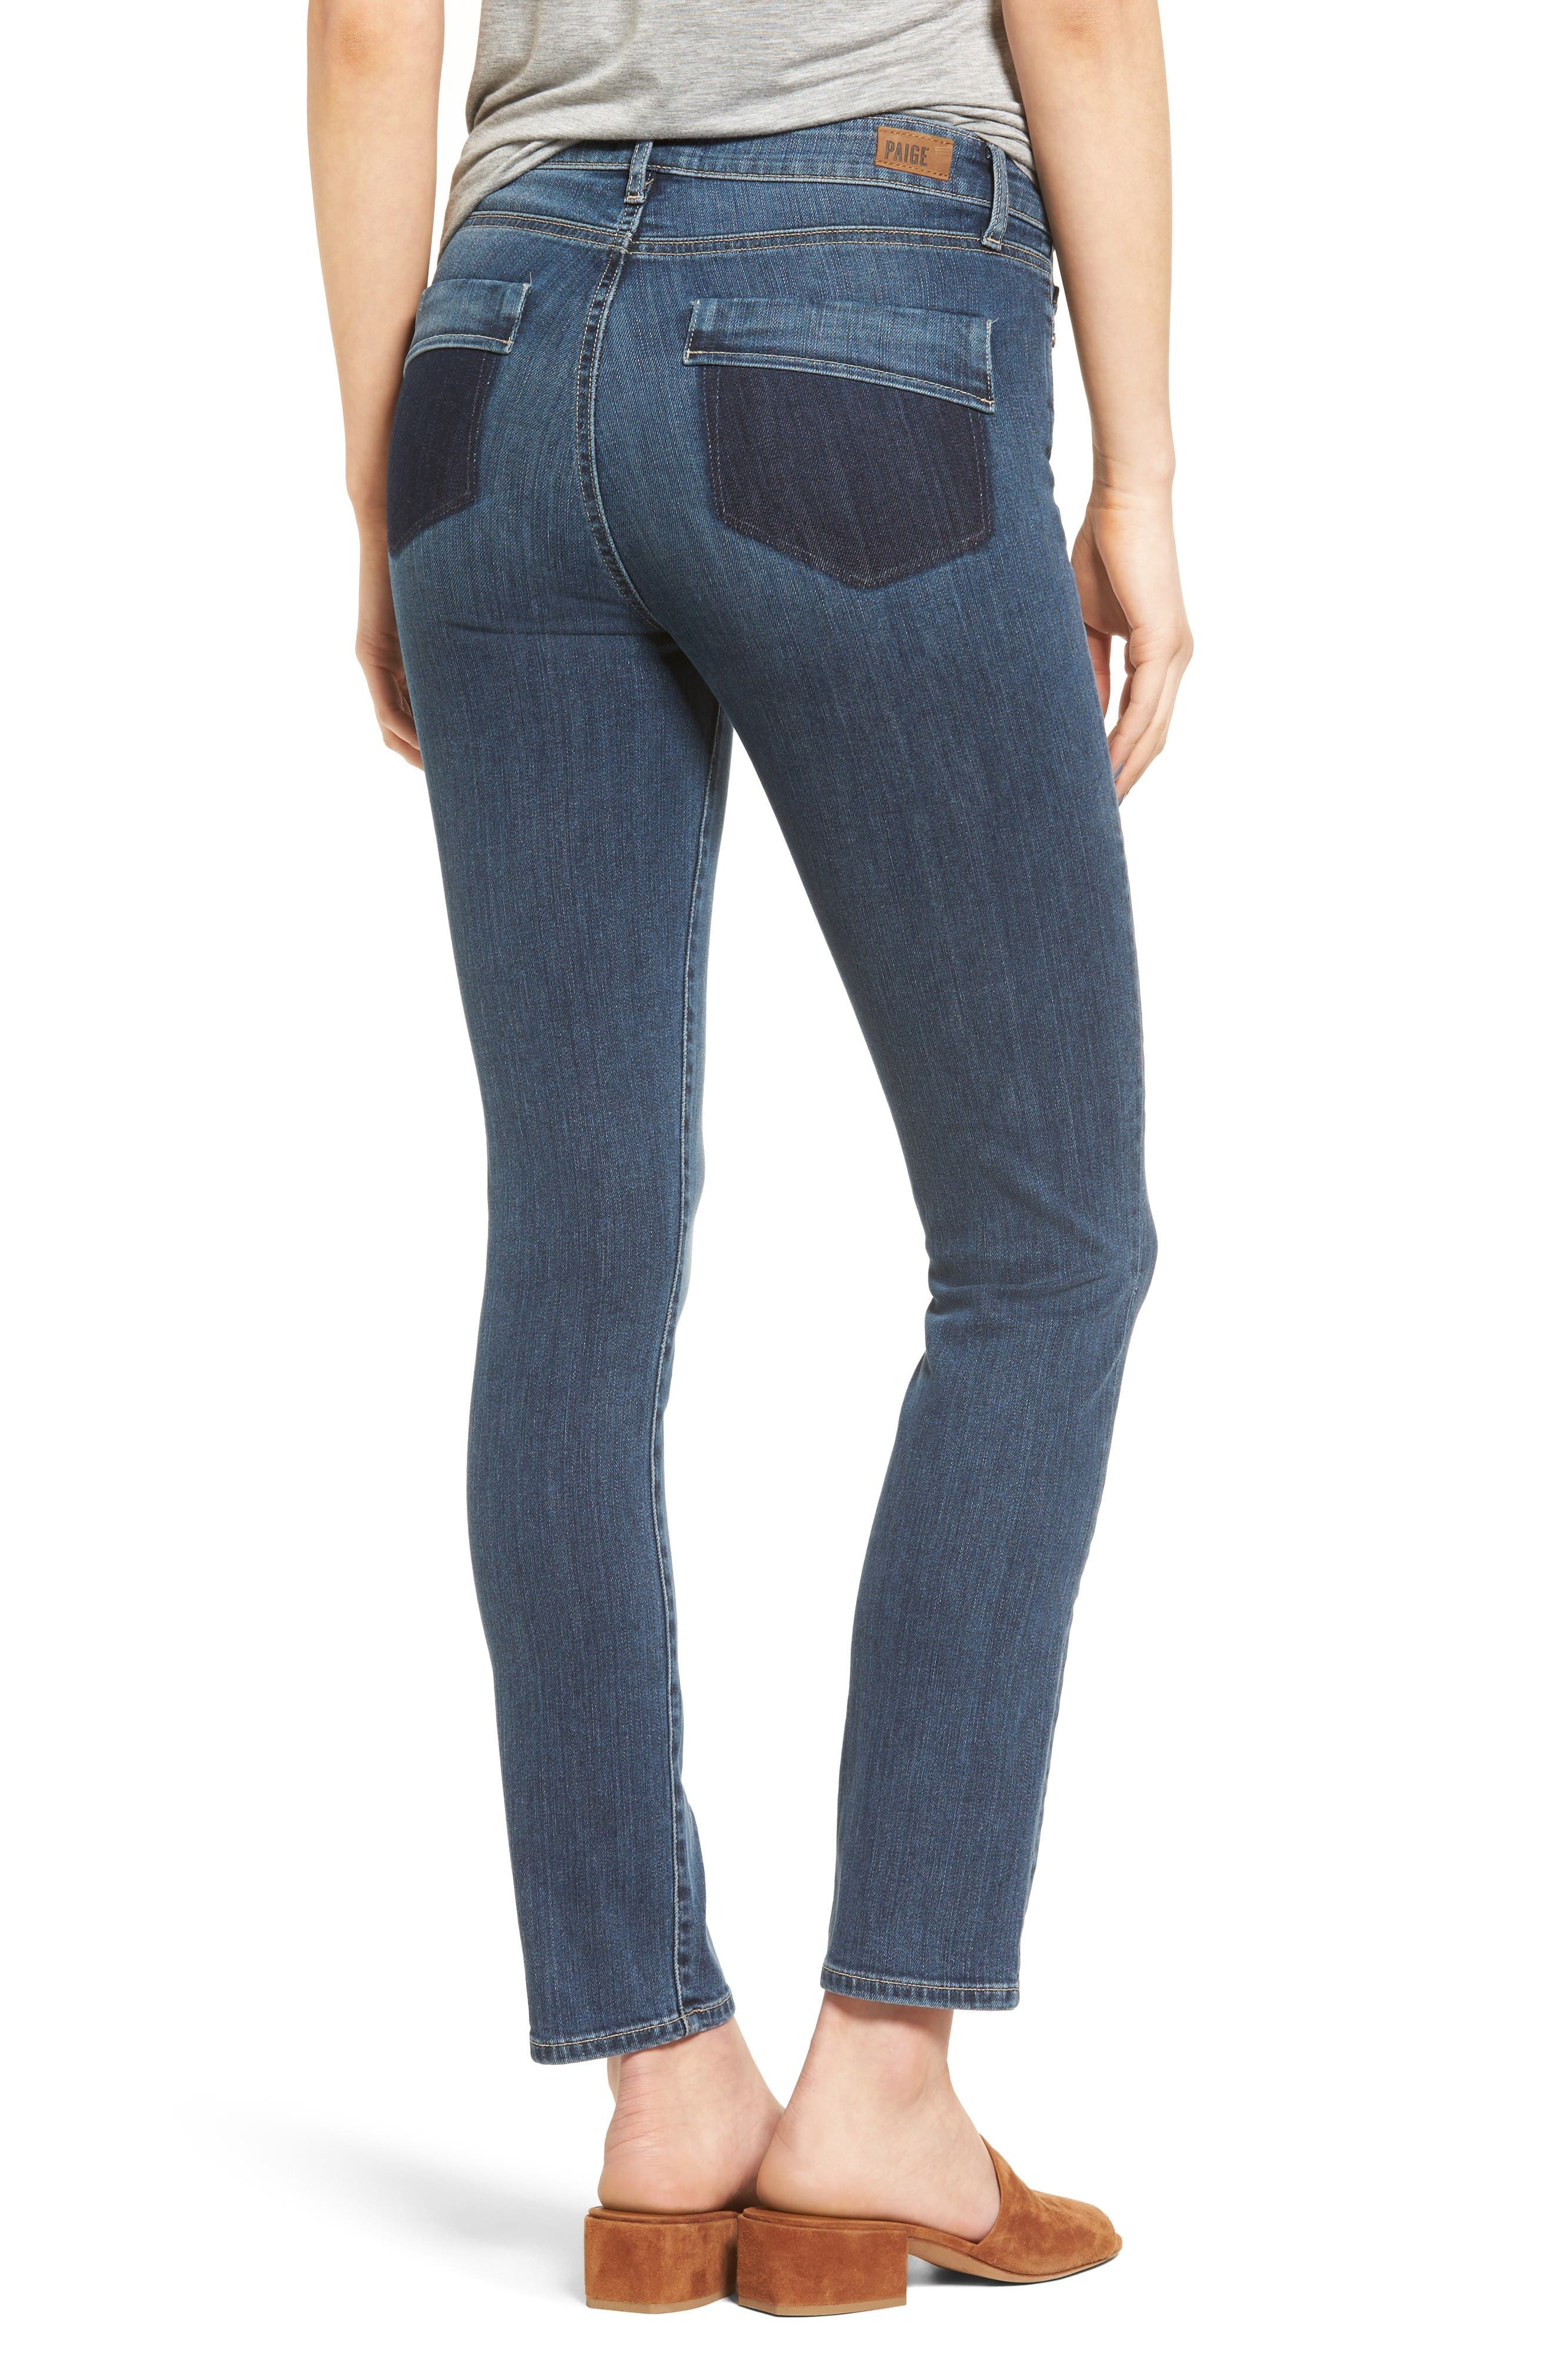 Alternate Image 2  - PAIGE River High Waist Ankle Peg Straight Leg Jeans (Izzy Distressed)